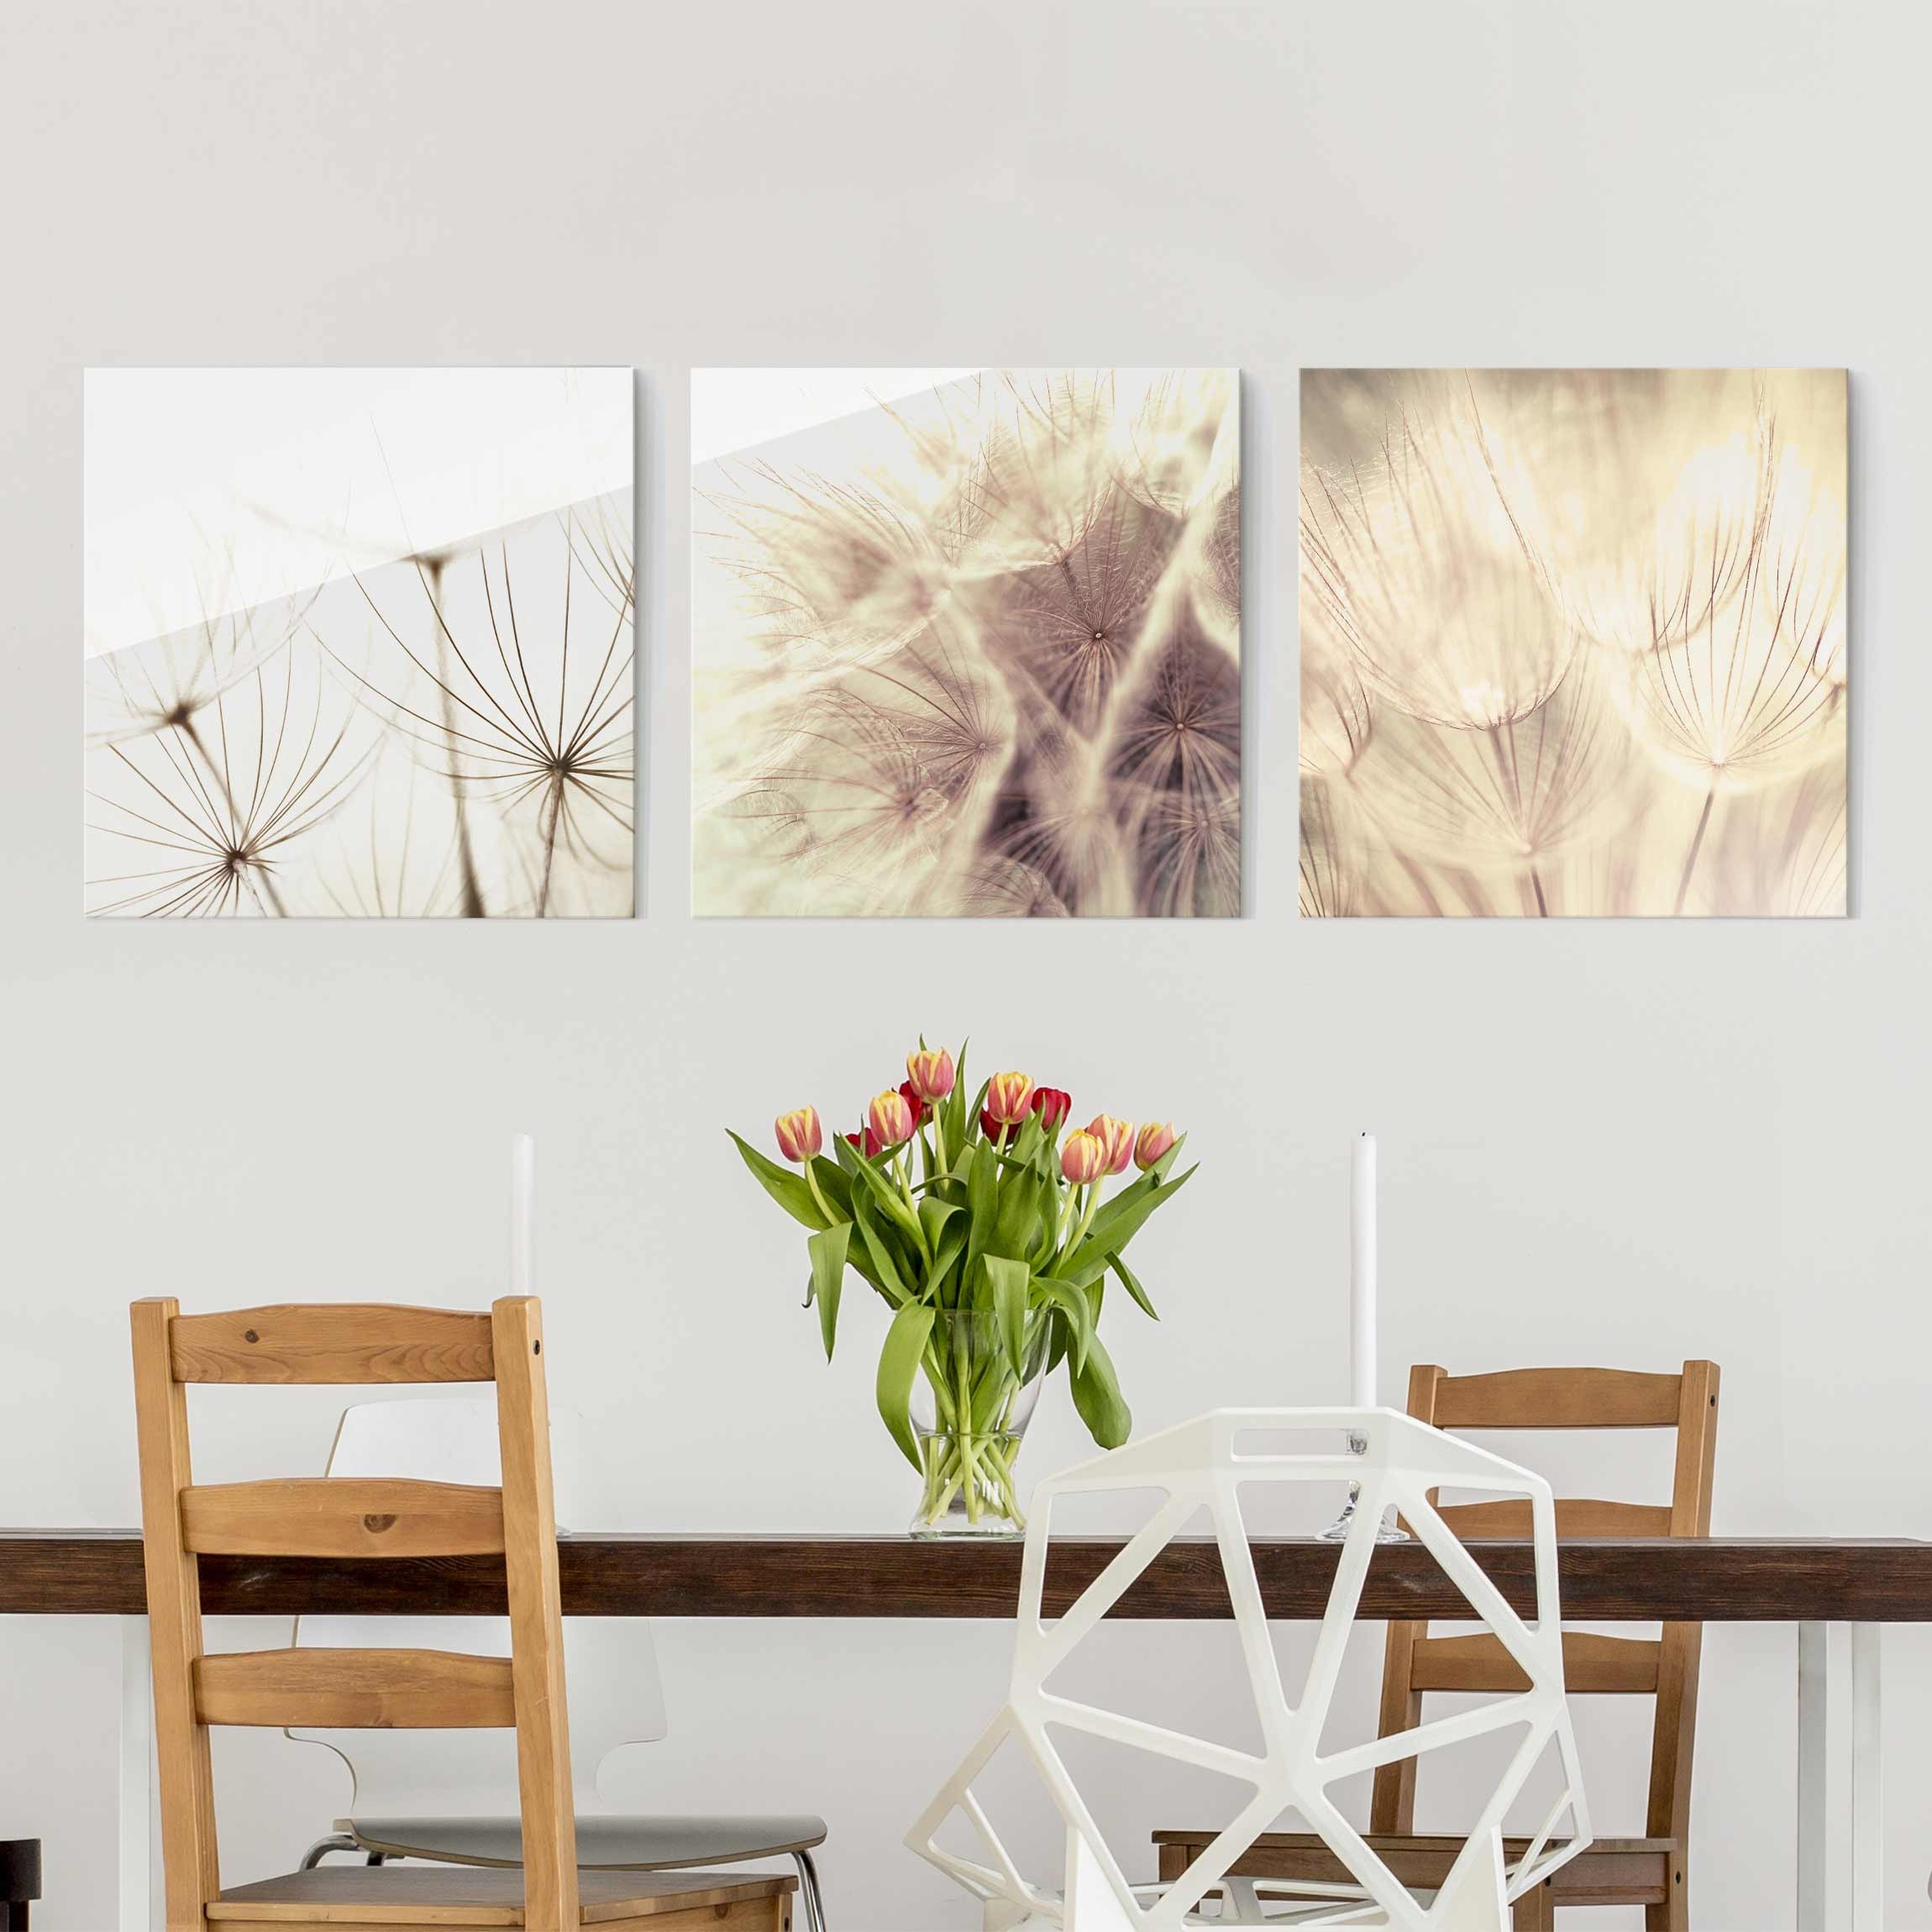 Glasbild Schlafzimmer Glass Print Set - Dandelions And Grasses - 3 Glass Wall